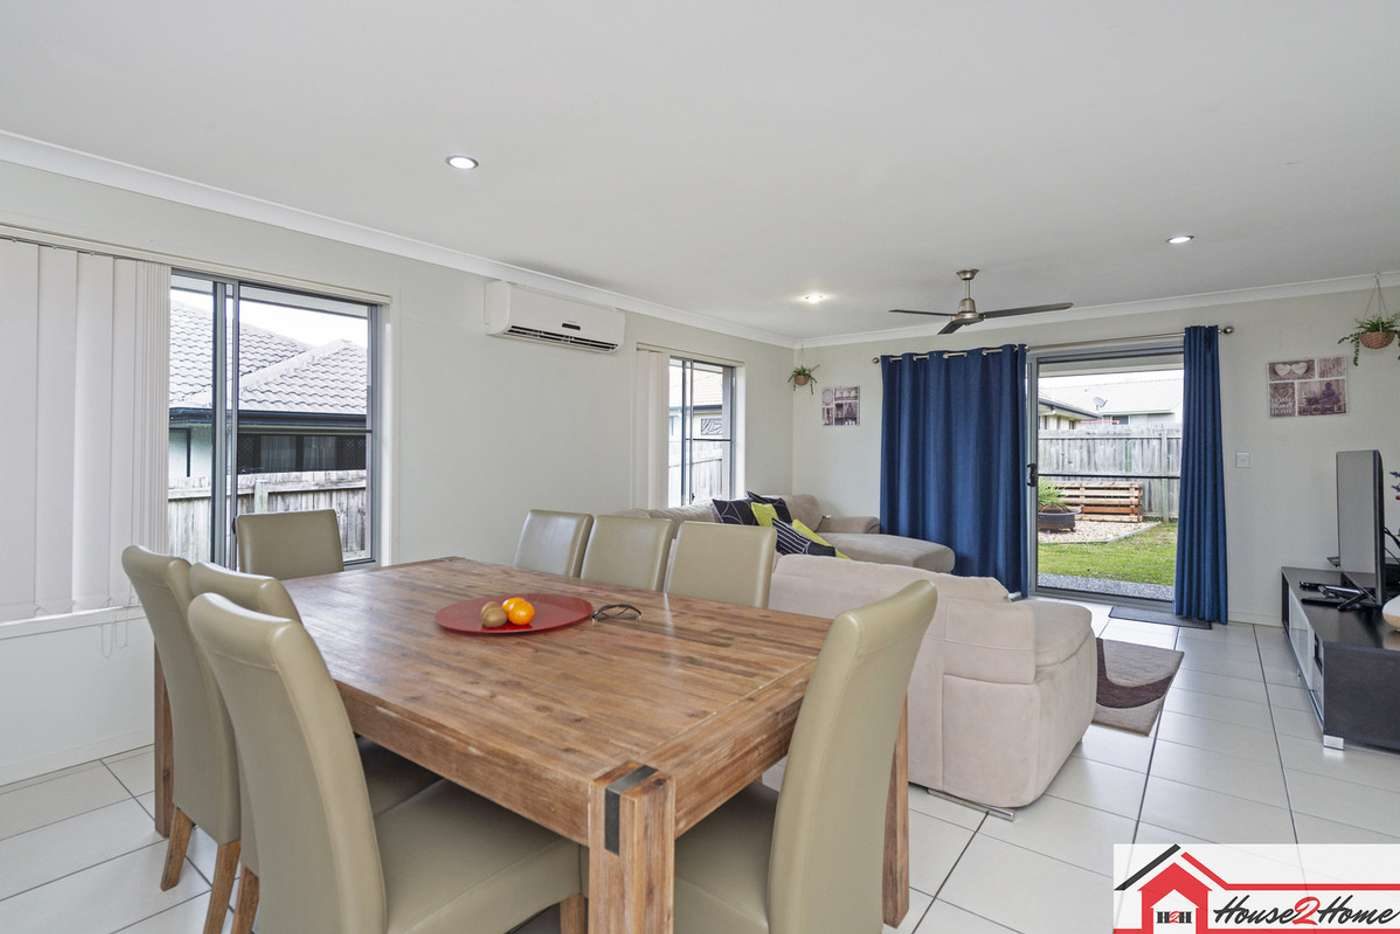 Sixth view of Homely house listing, 4 Mimosa Street, Ormeau QLD 4208